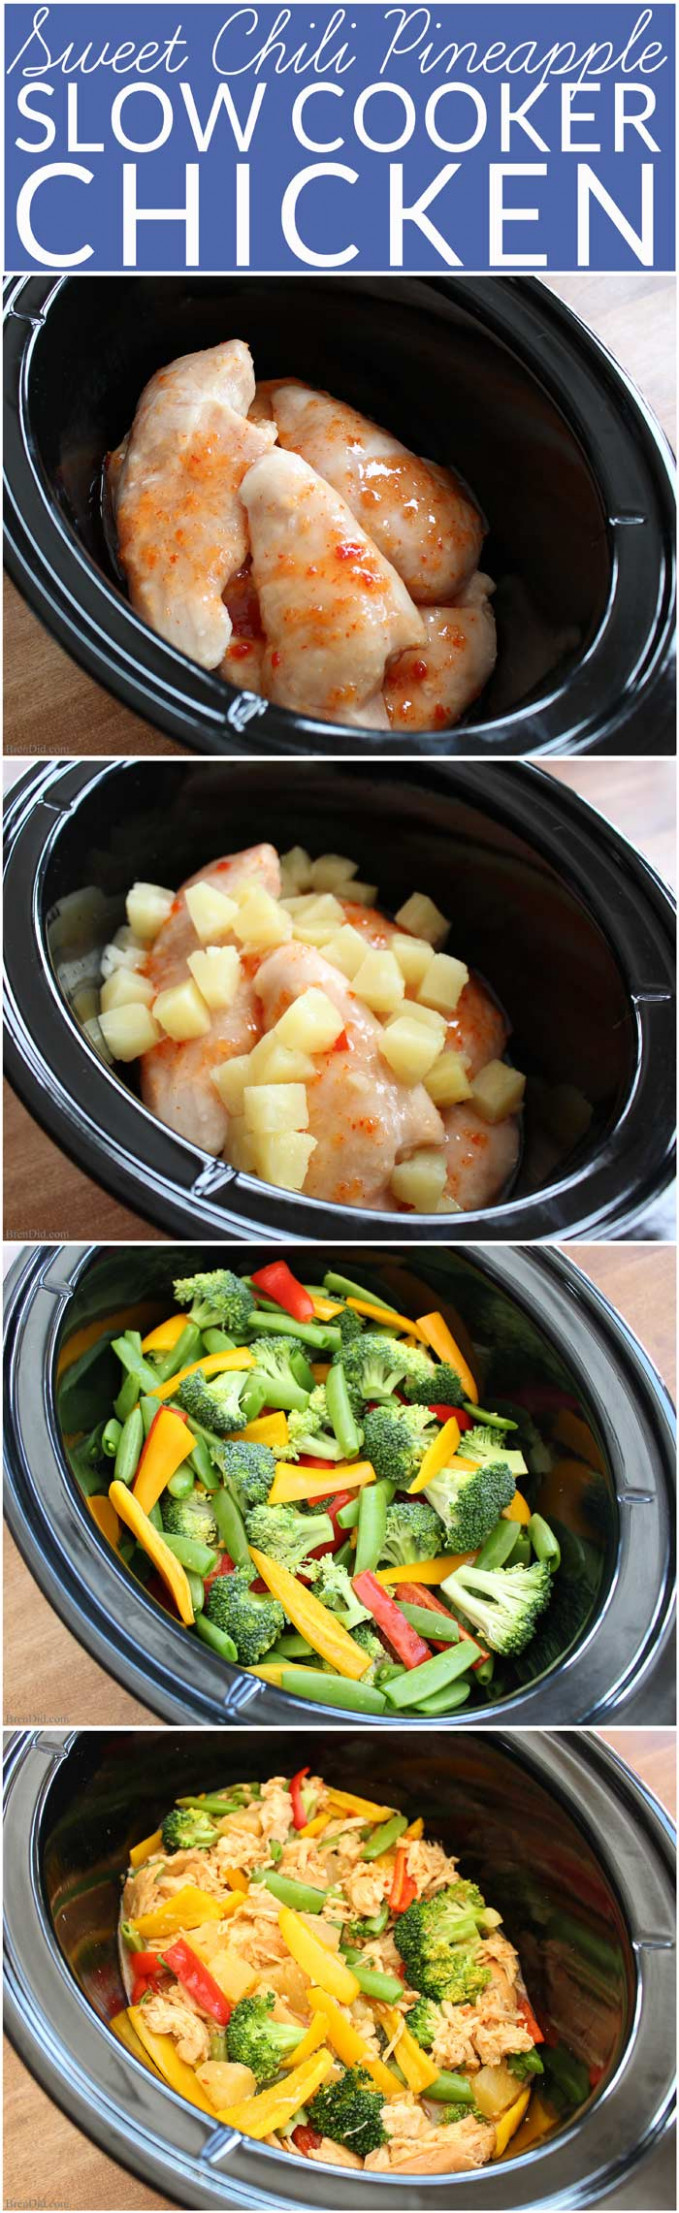 Sweet Chili Pineapple Chicken Easy Crockpot Recipe - Bren Did